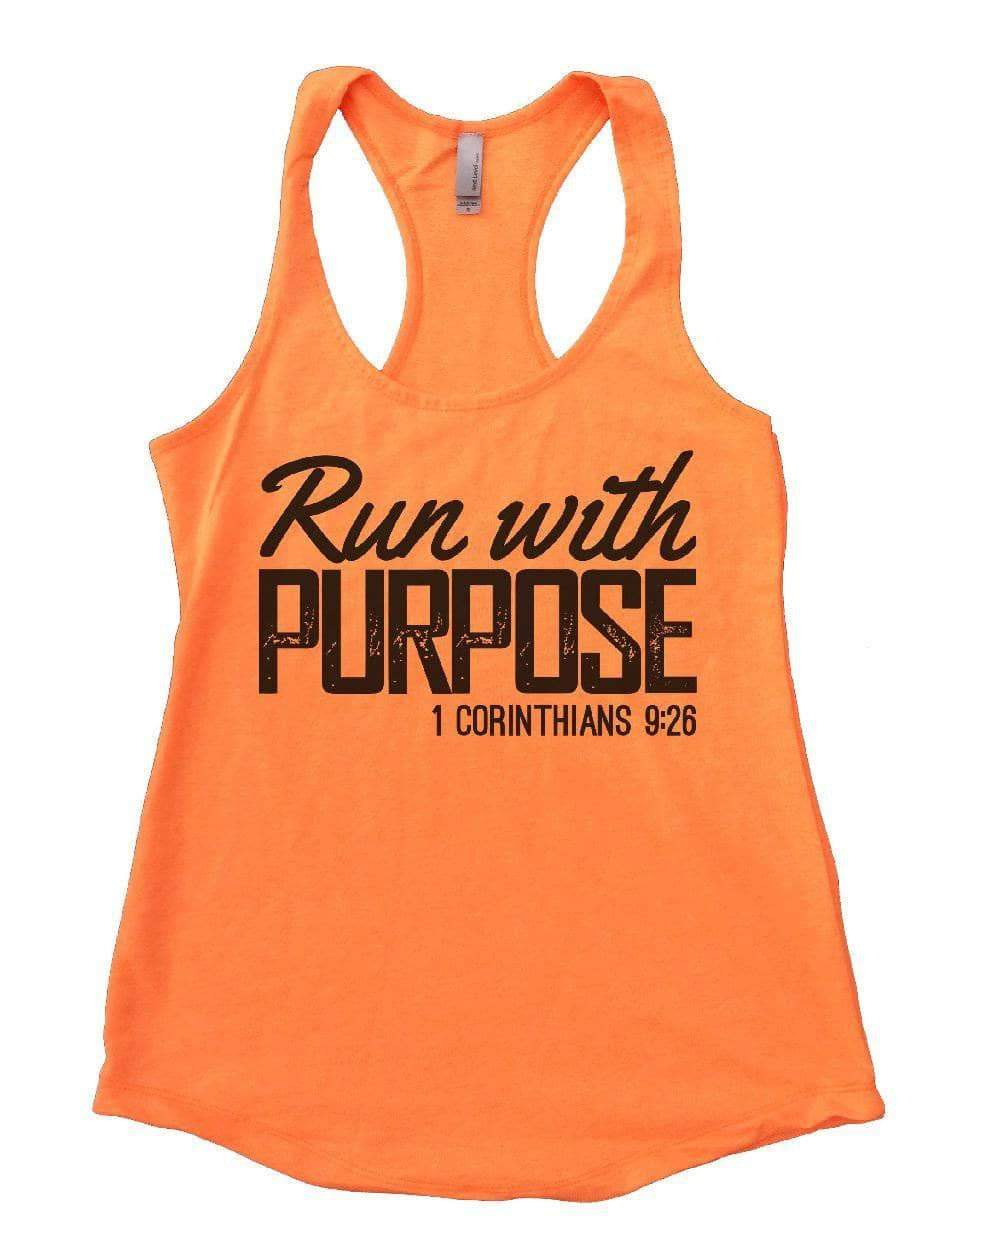 Run With PURPOSE 1 CORINTHIANS Womens Workout Tank Top Small Womens Tank Tops Neon Orange